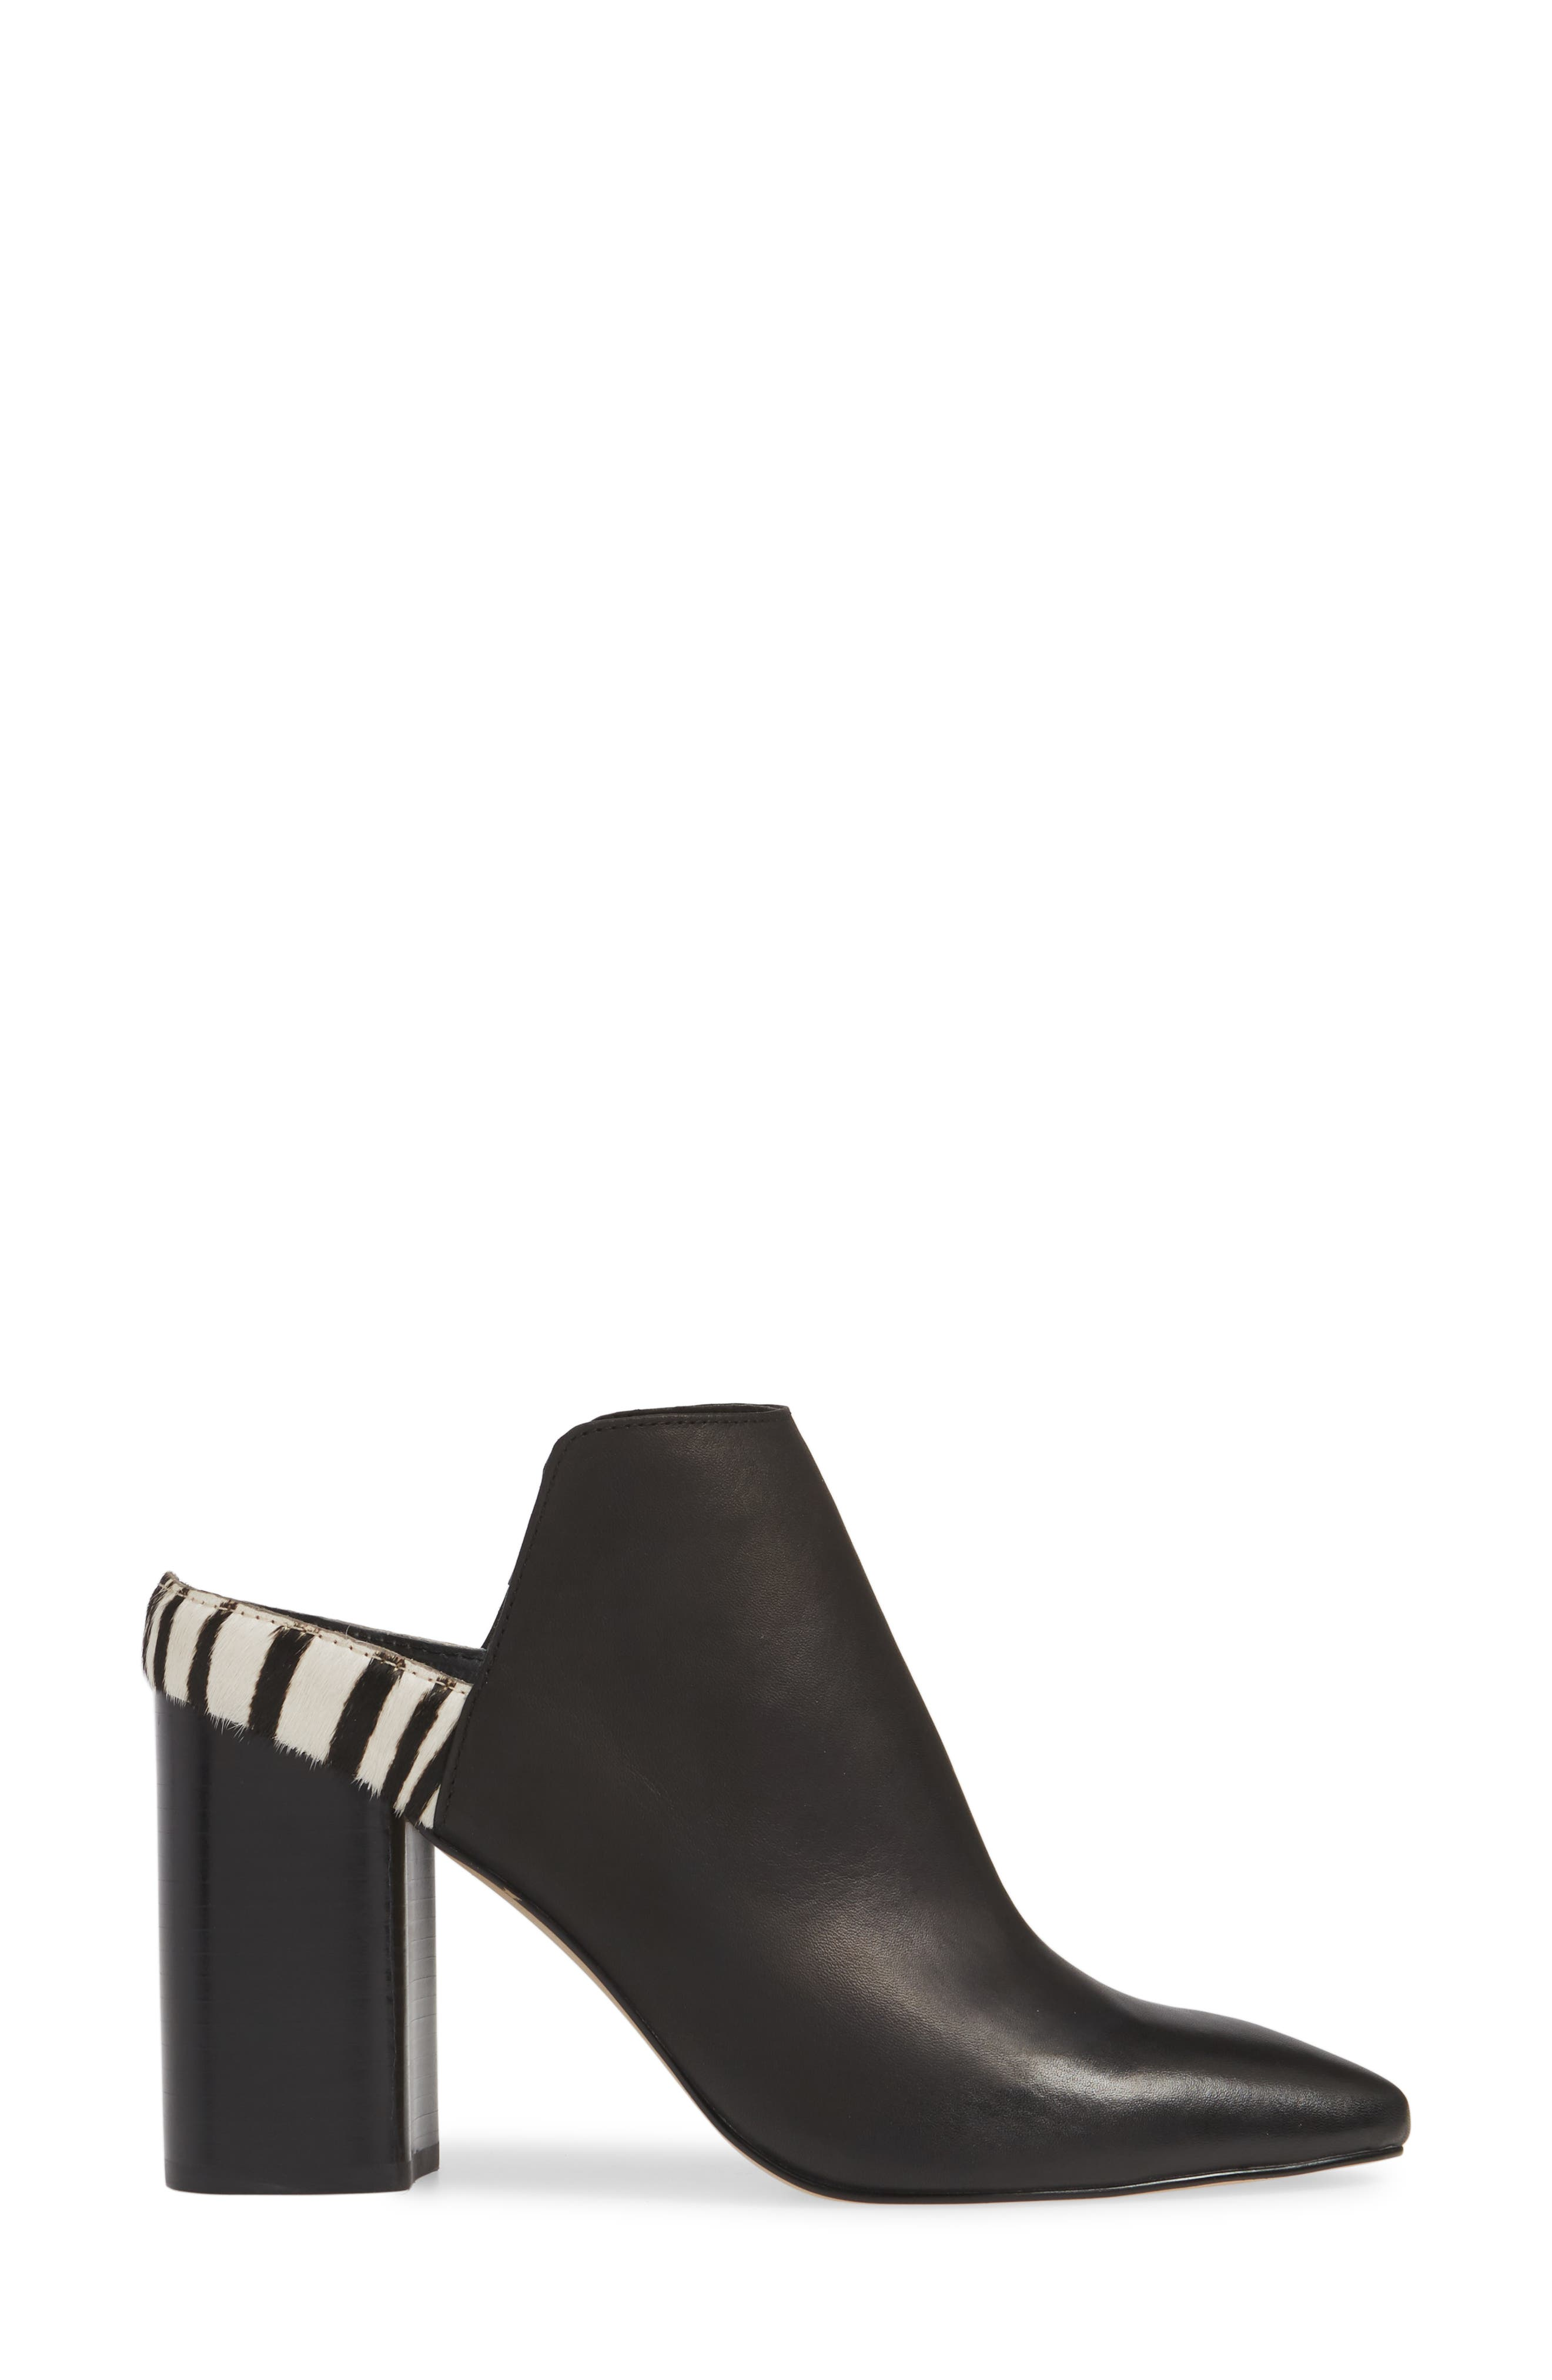 DOLCE VITA, Renly Mule, Alternate thumbnail 3, color, ZEBRA PRINT CALF HAIR/ LEATHER